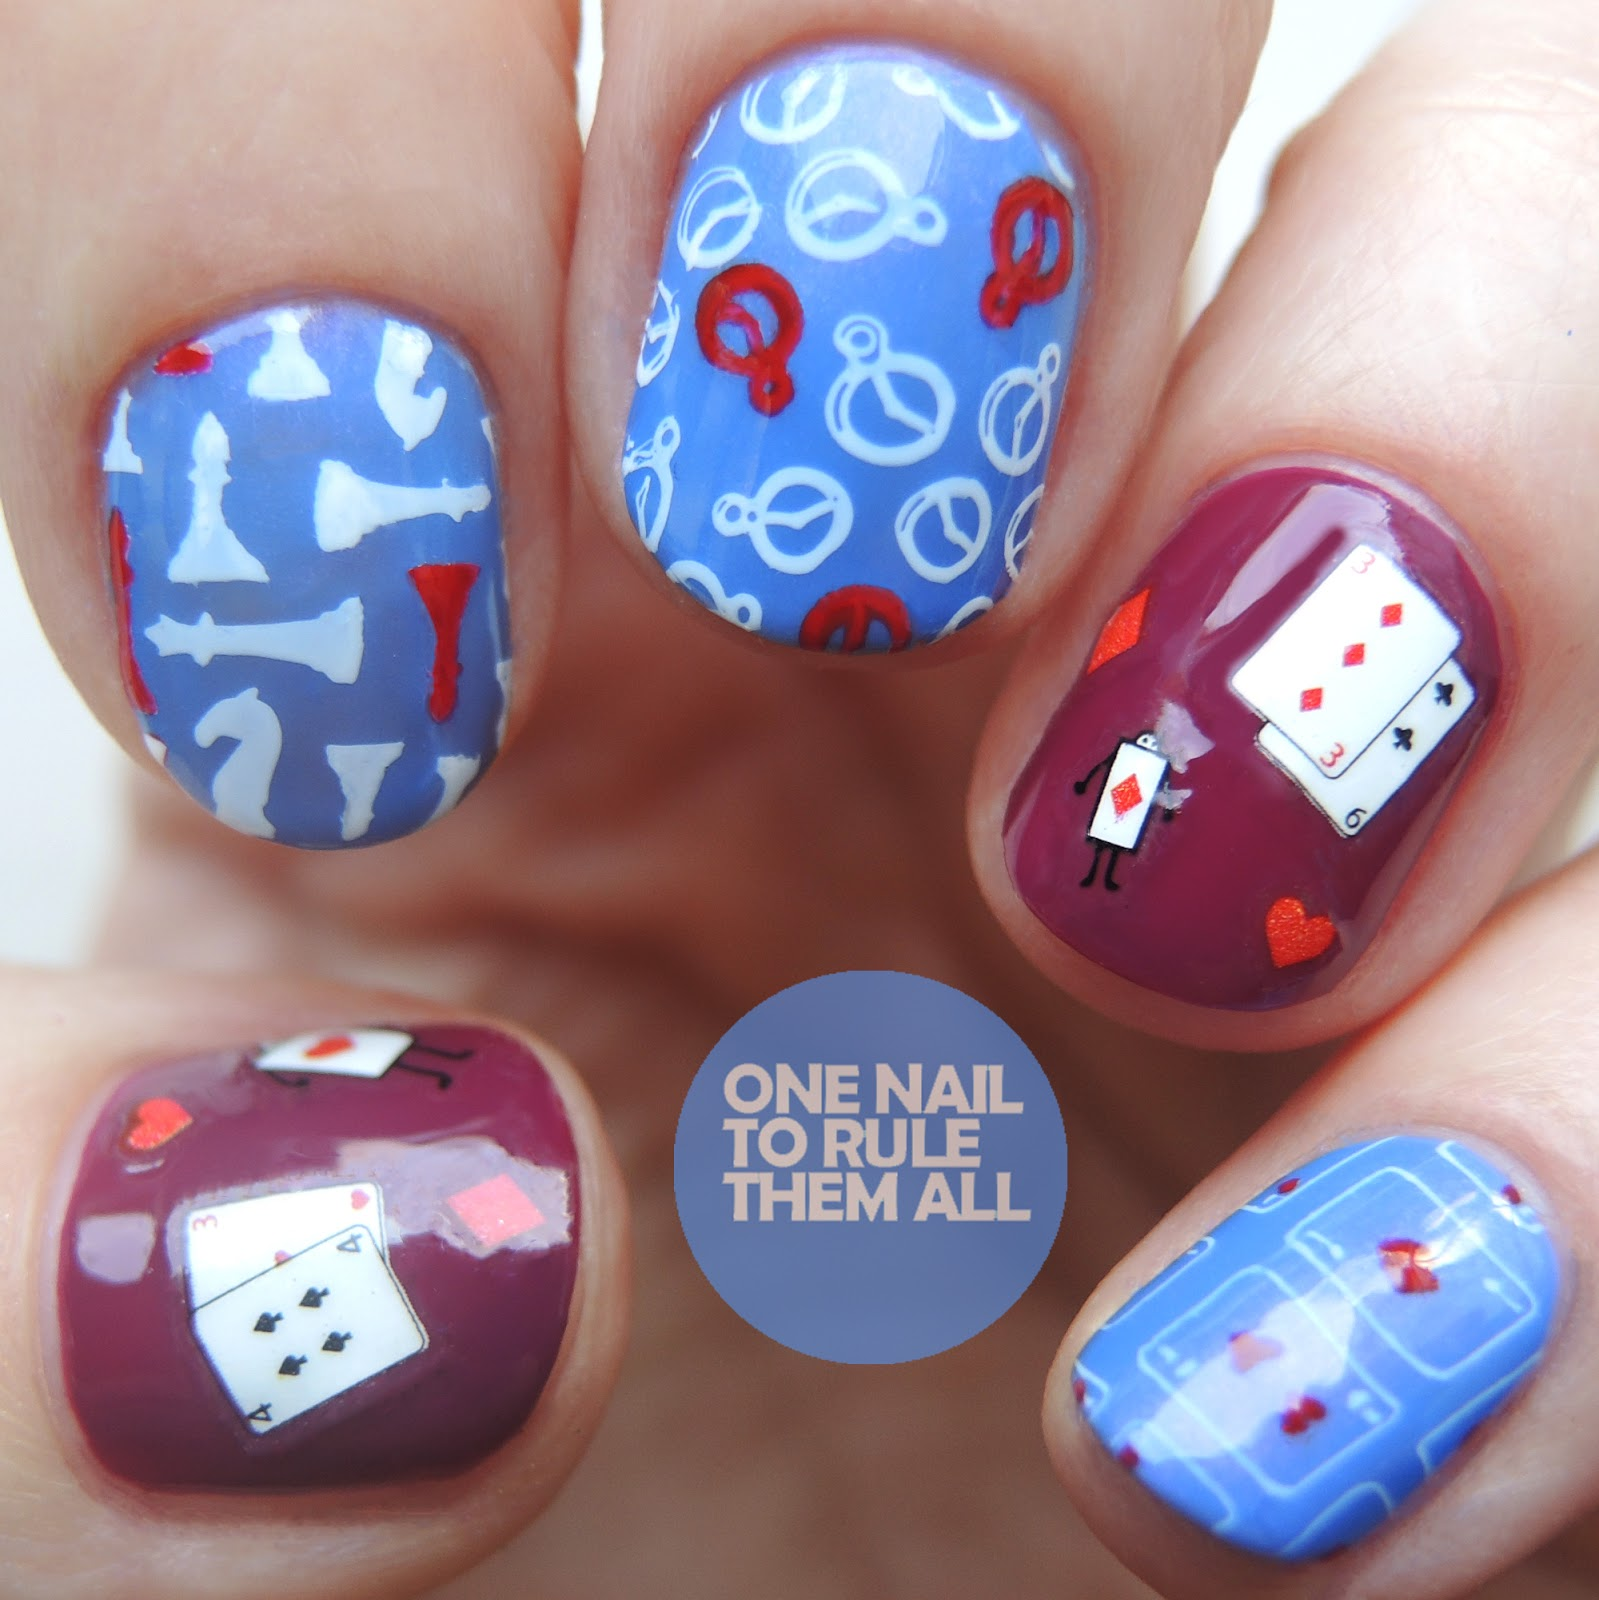 One Nail To Rule Them All: Meebox Nov '17 - Through The Looking